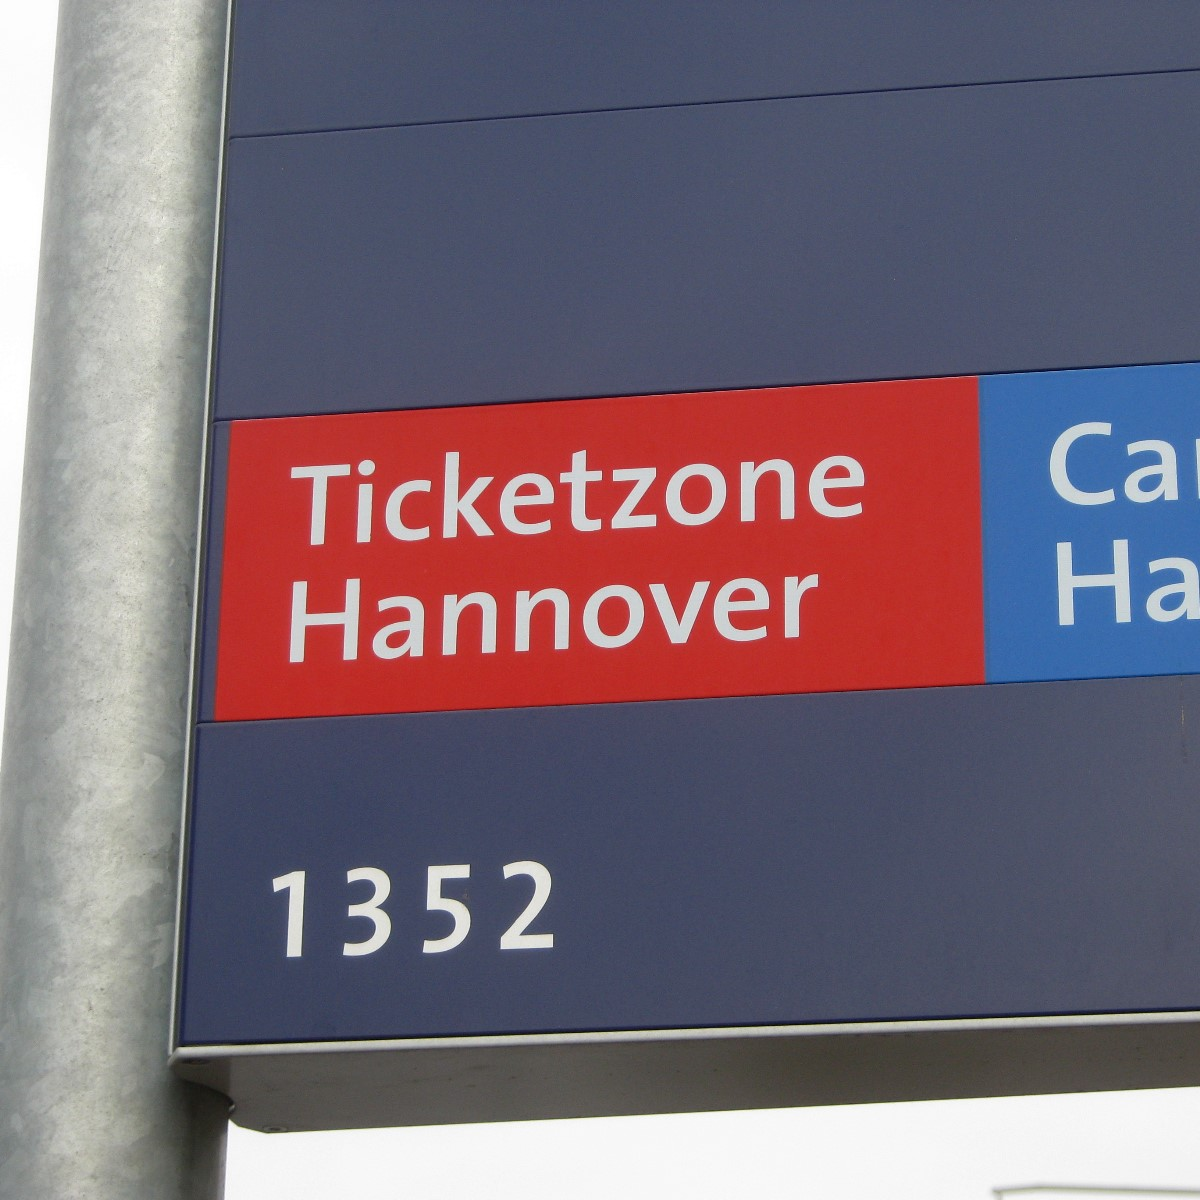 Ticketzone Hannover